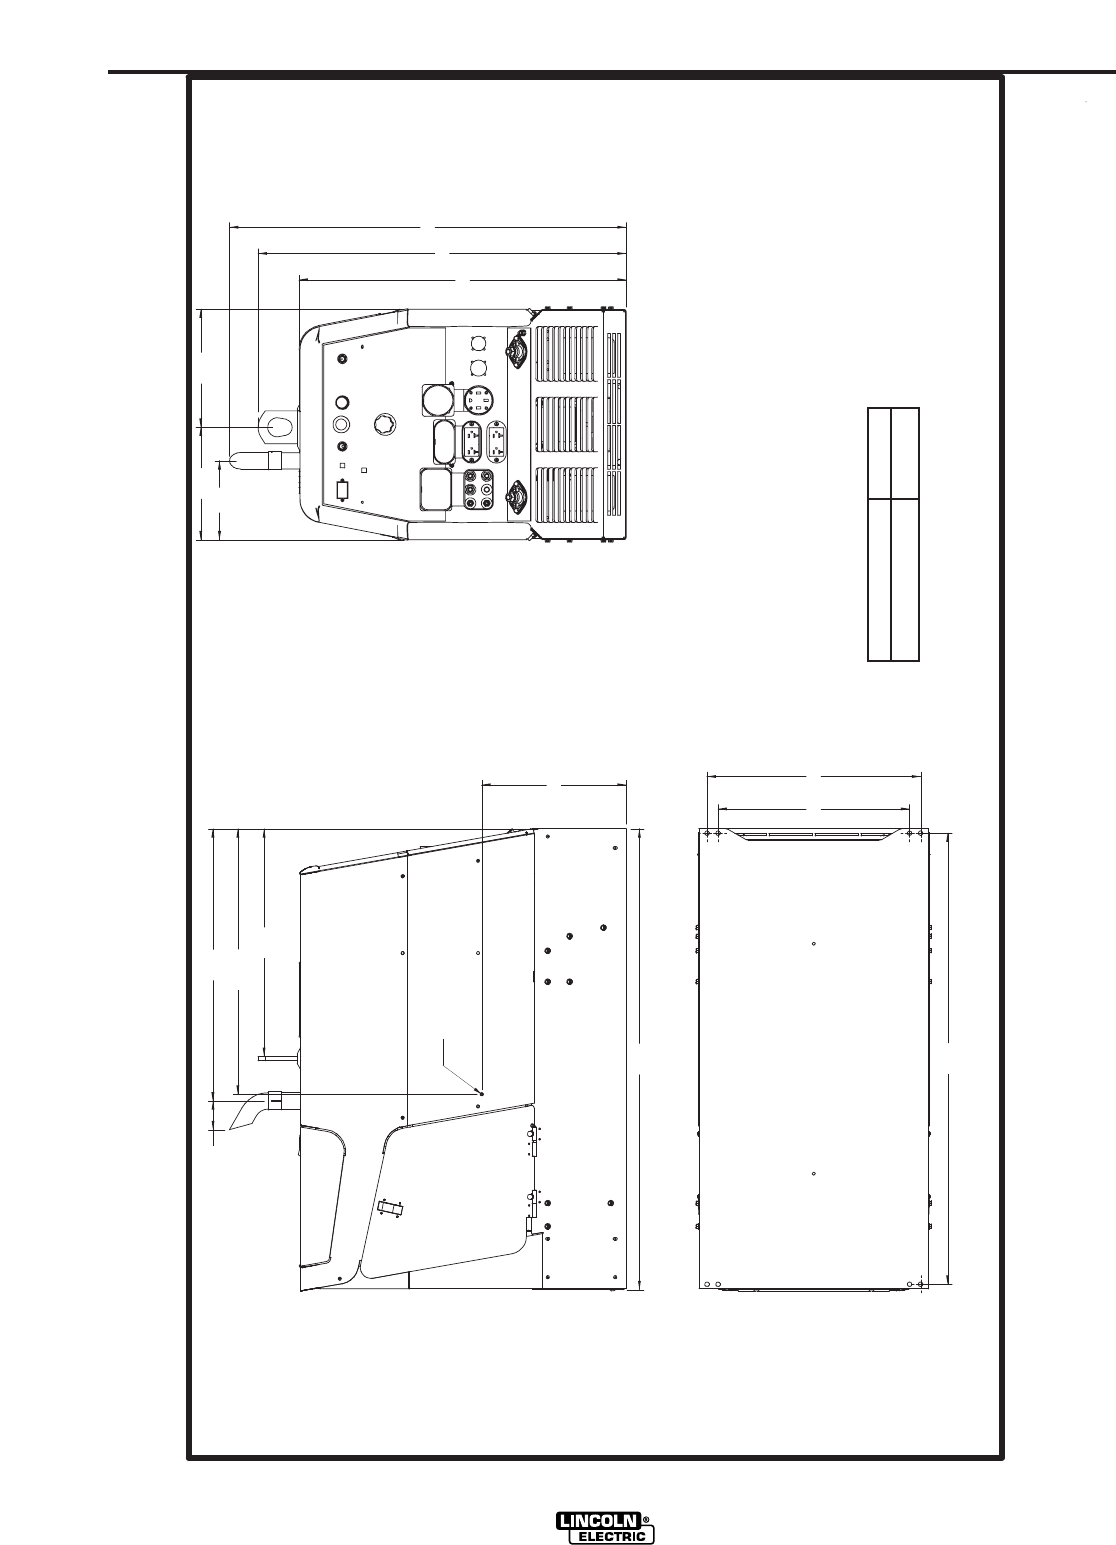 lincoln 305g wiring diagram lincoln electric im742 a dimension print ranger 305g  im742 a dimension print ranger 305g